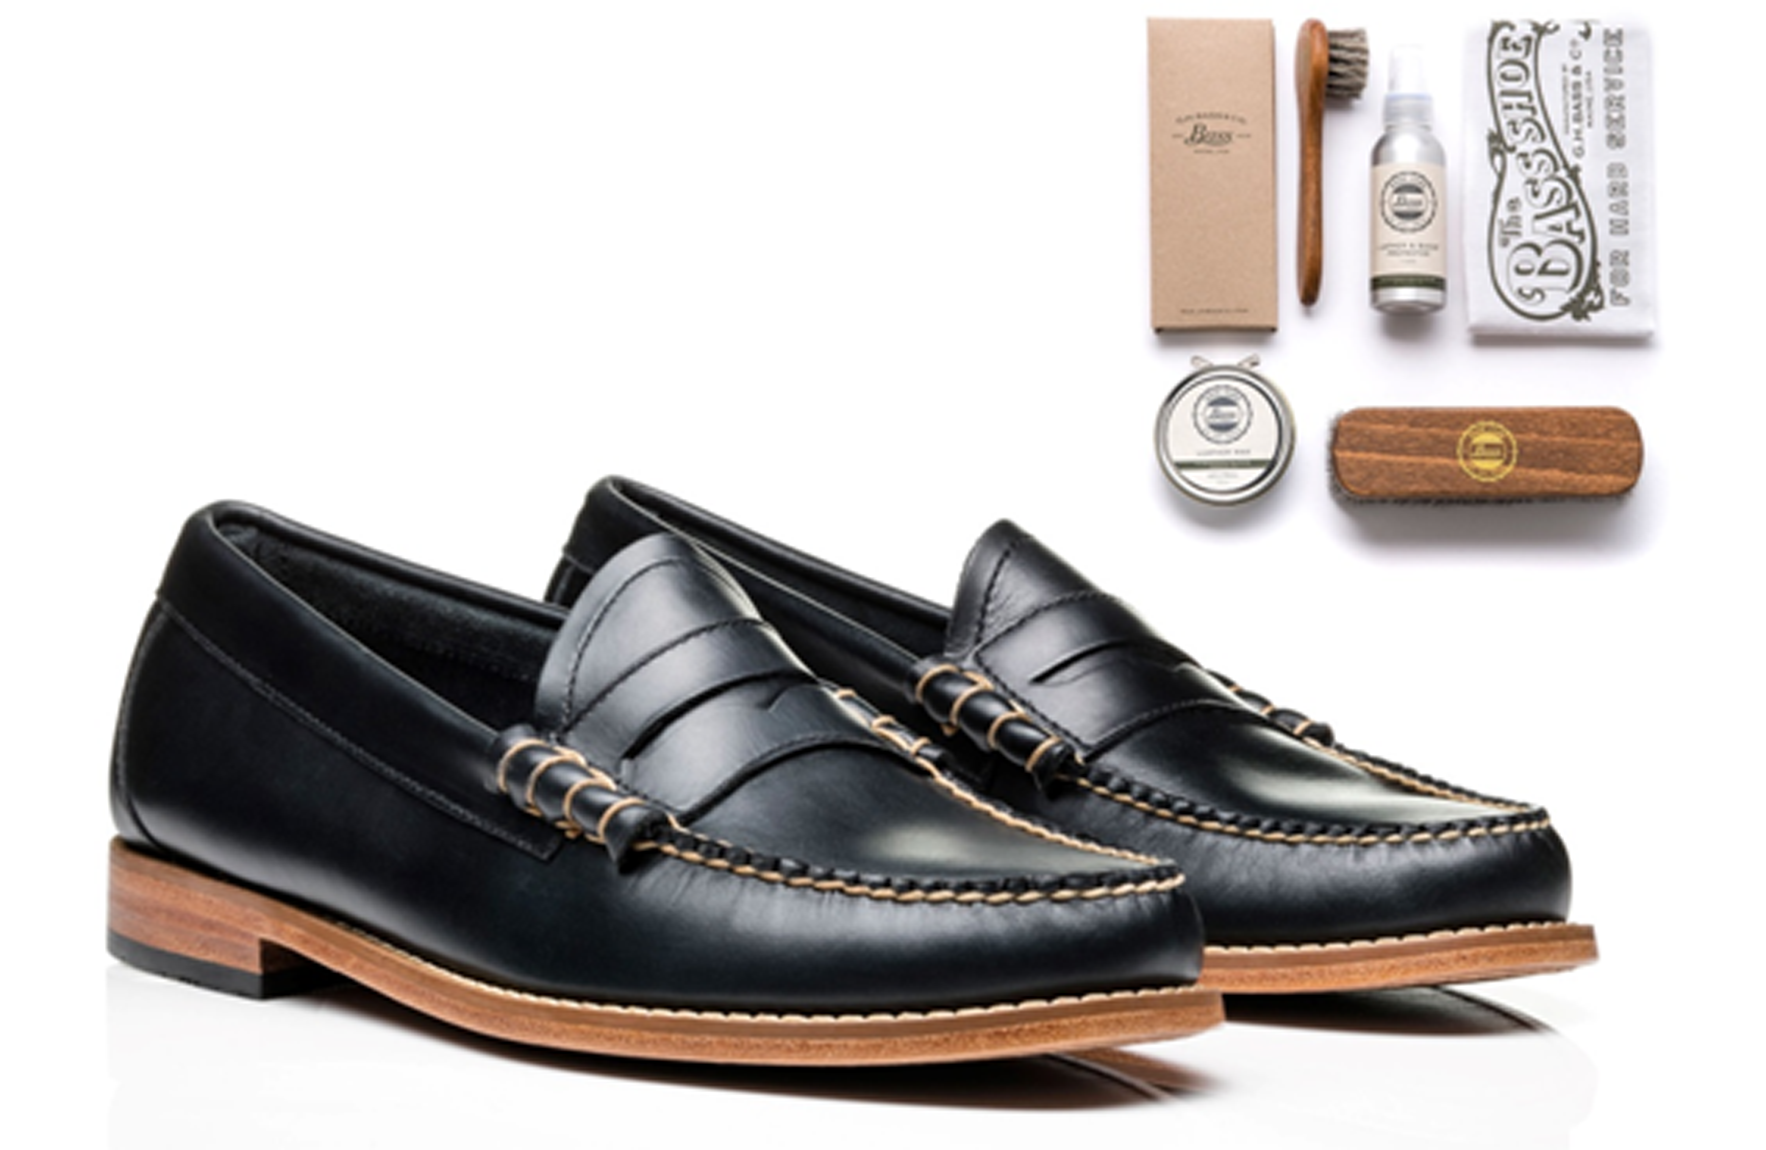 WIN! G.H BASS £200 voucher & luxury shoe care kit